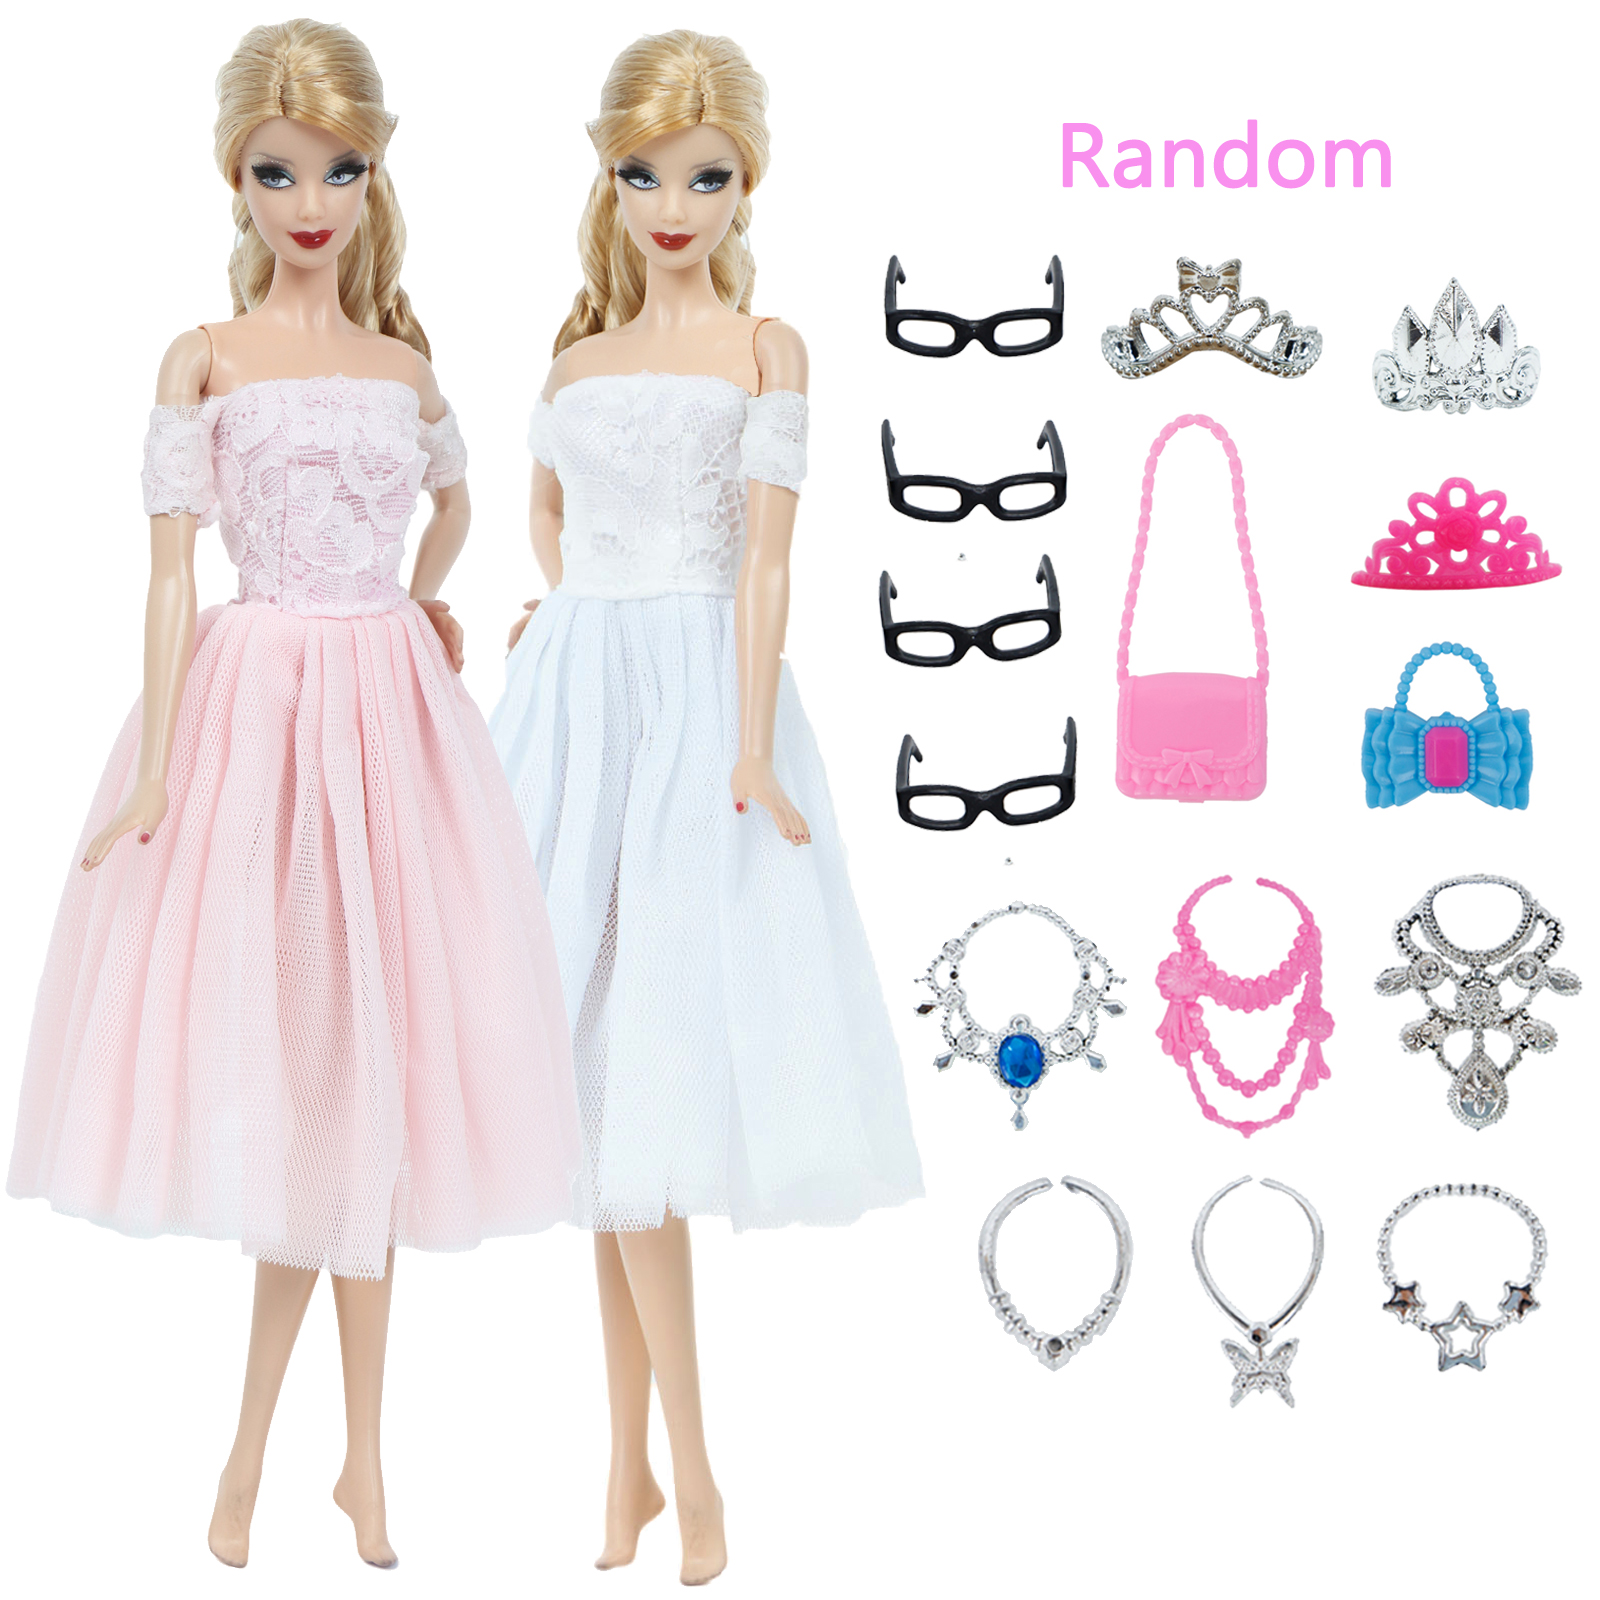 17 Pcs = Random 15 Accessories + 2 Lace Mini Gown Princess Party Dresses Bag Glasses Crown Necklace Clothes For Barbie Doll Toy